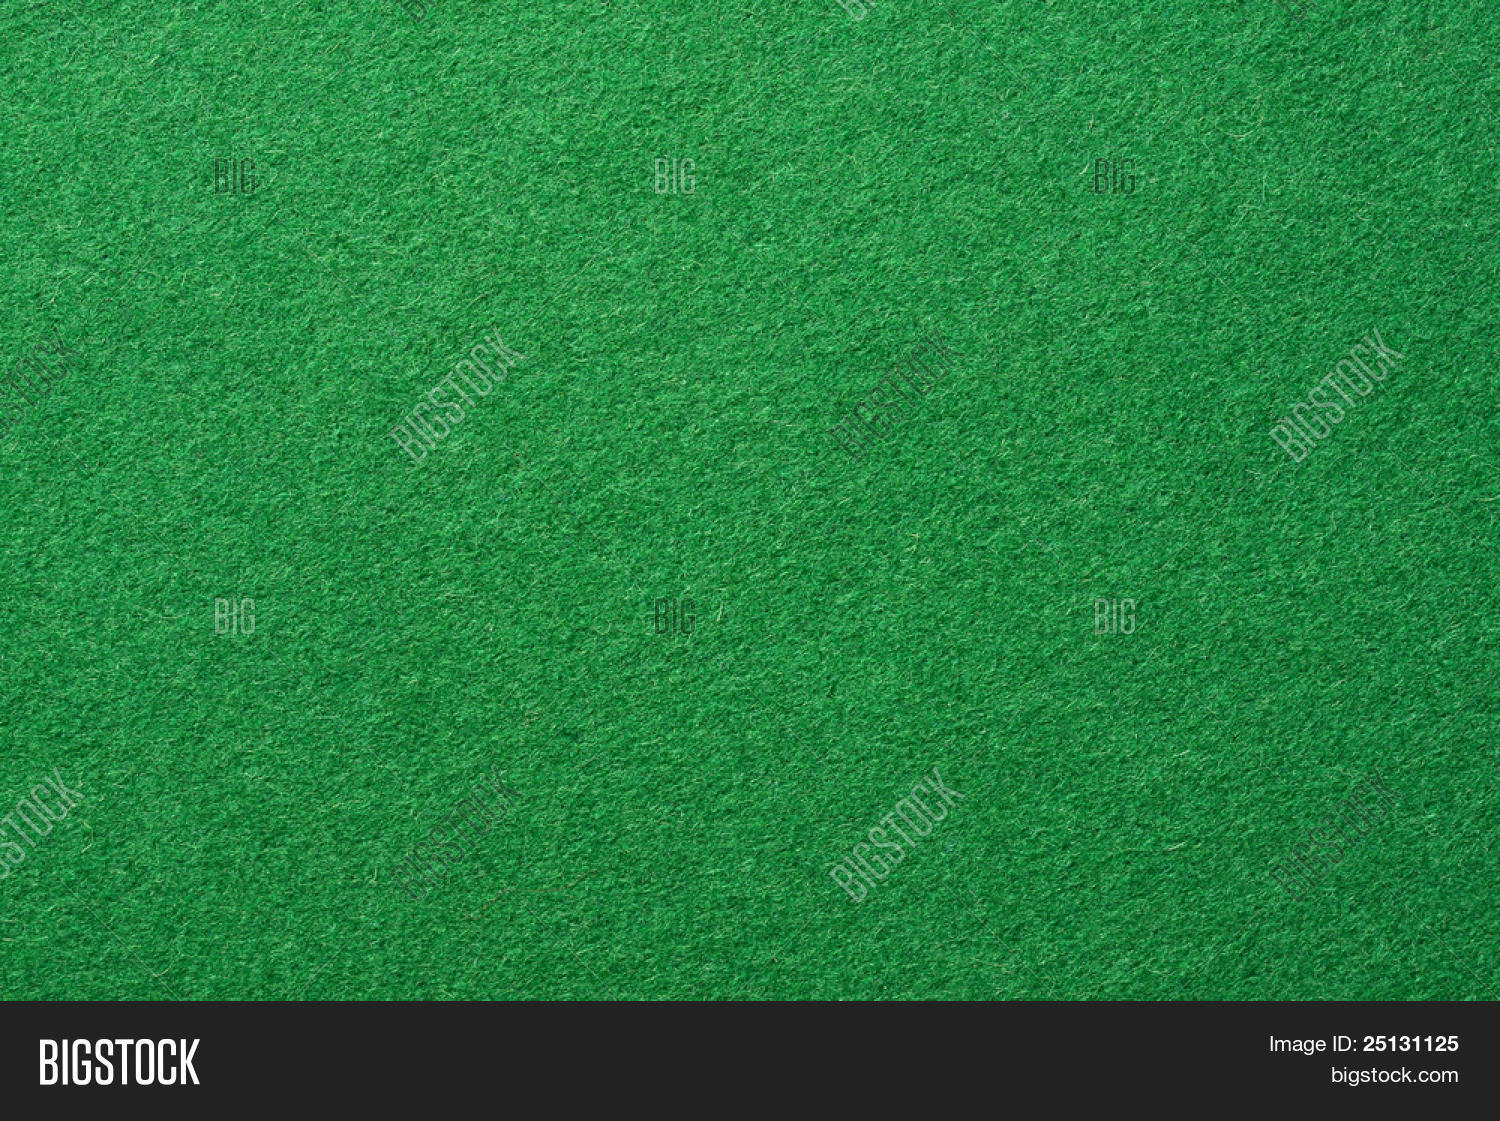 Elegant Green Felt Background. Useful For Poker Table Or Pool Table Surface